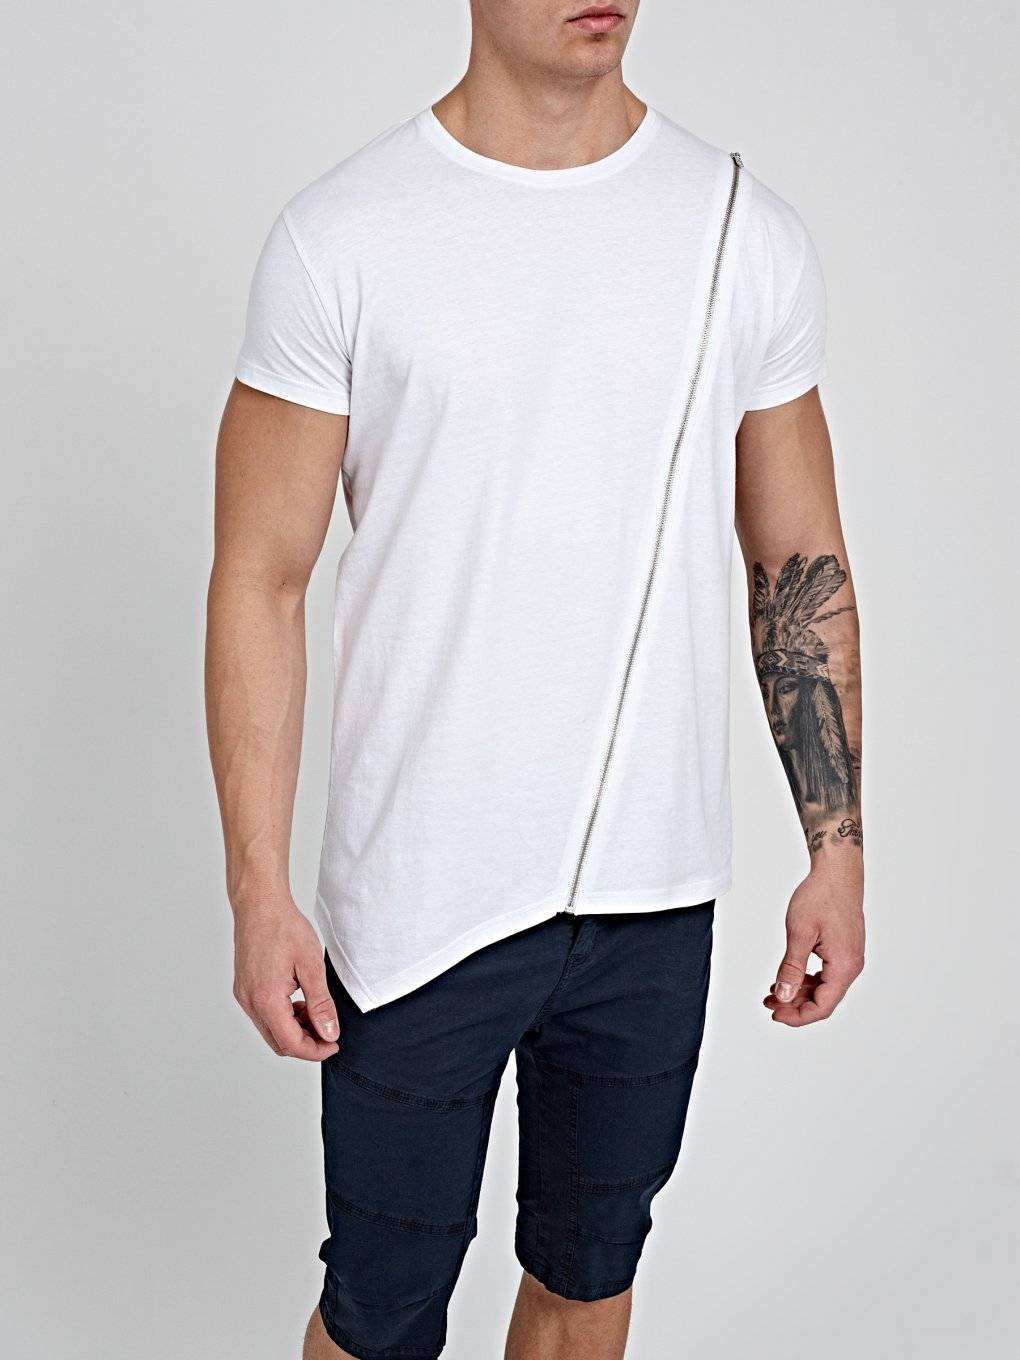 T-SHIRT WITH ZIPPER